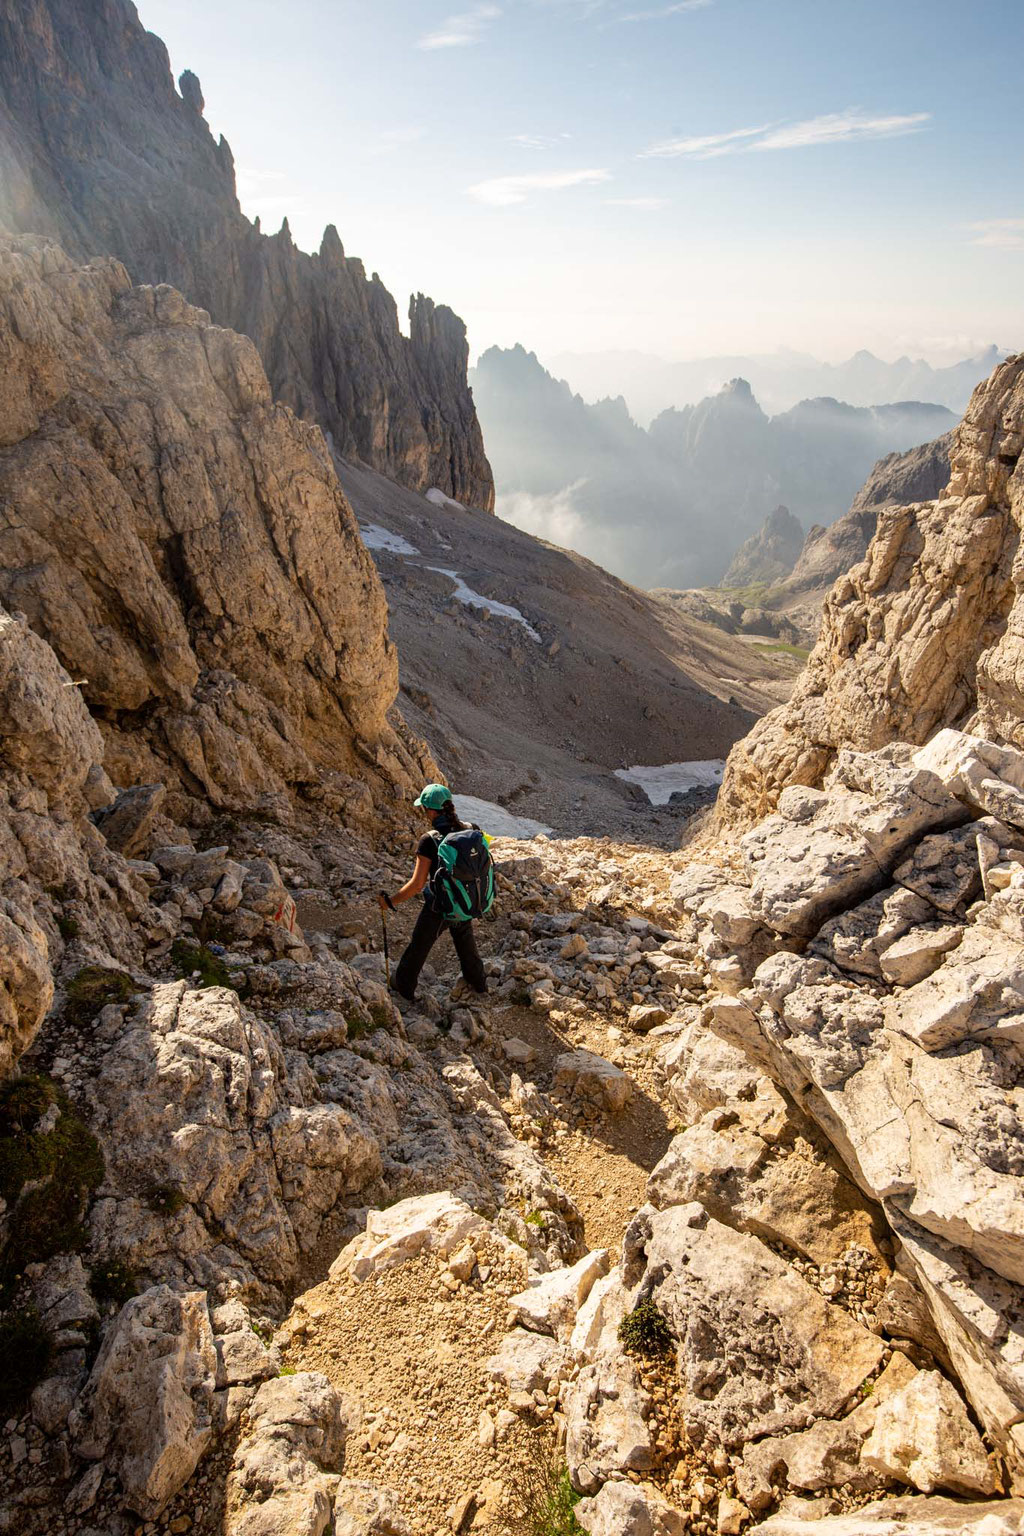 Coming down from Passo Delle Lede